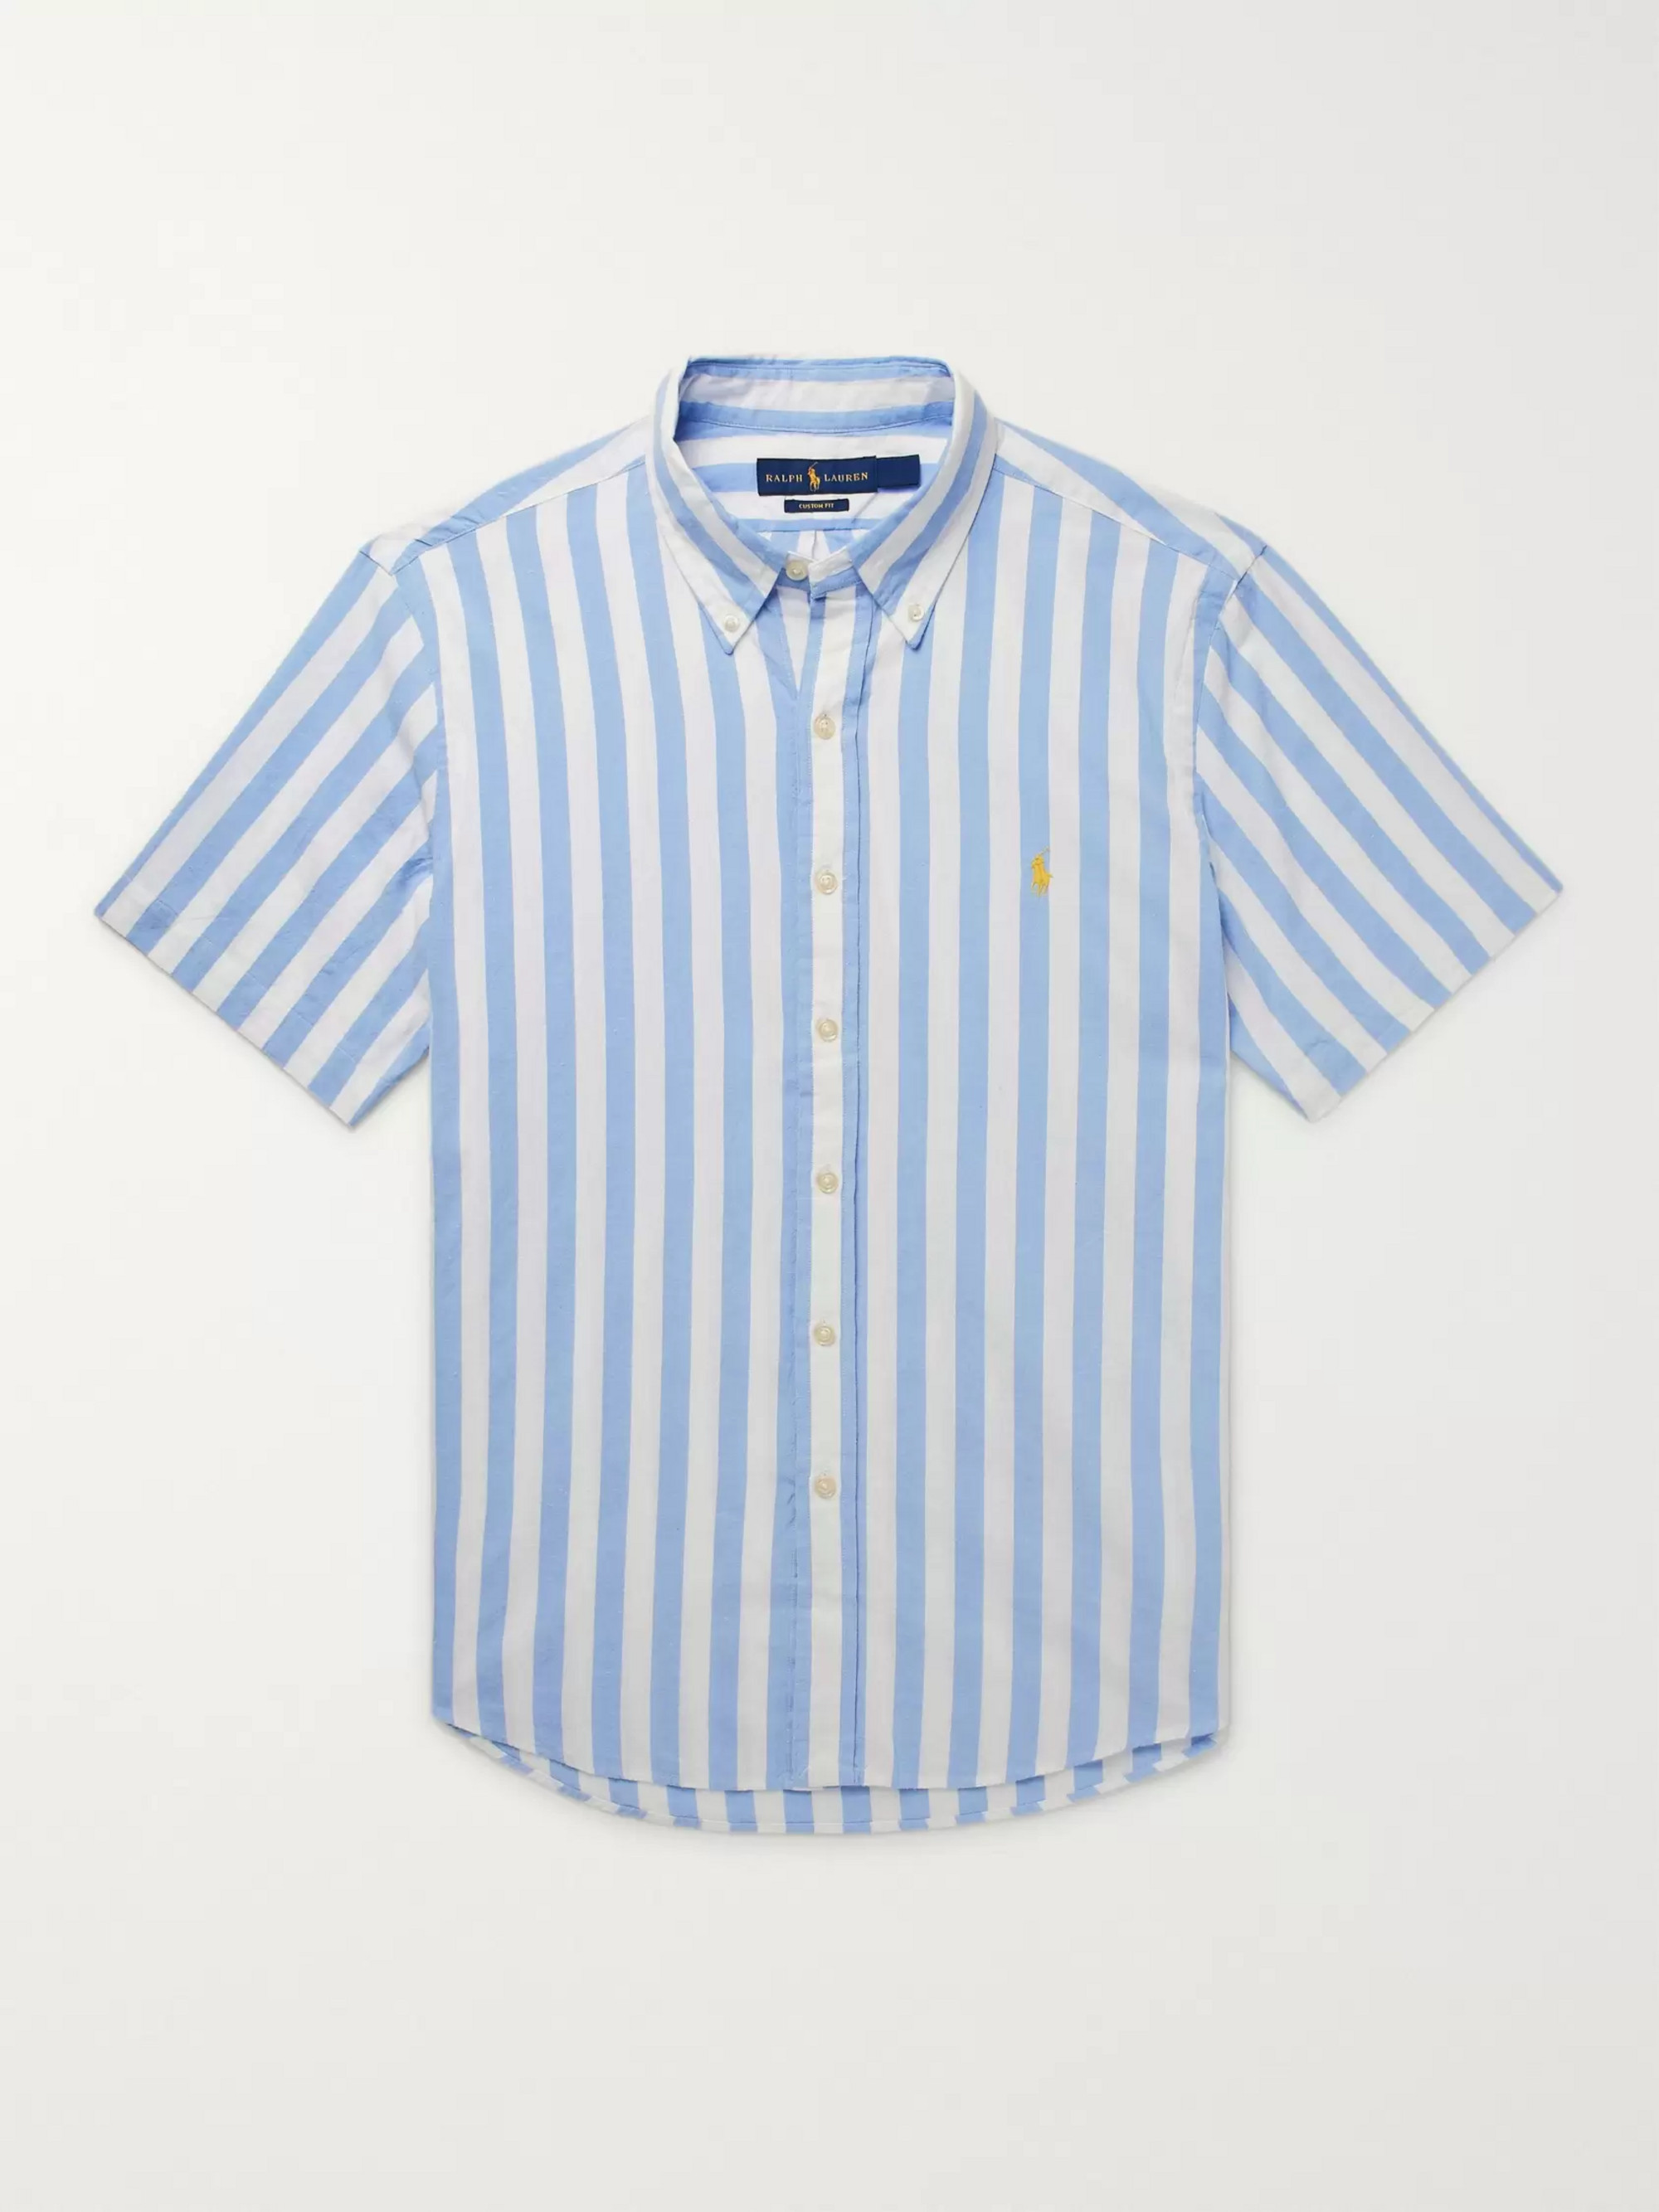 Polo Ralph Lauren Button-Down Collar Striped Cotton Shirt